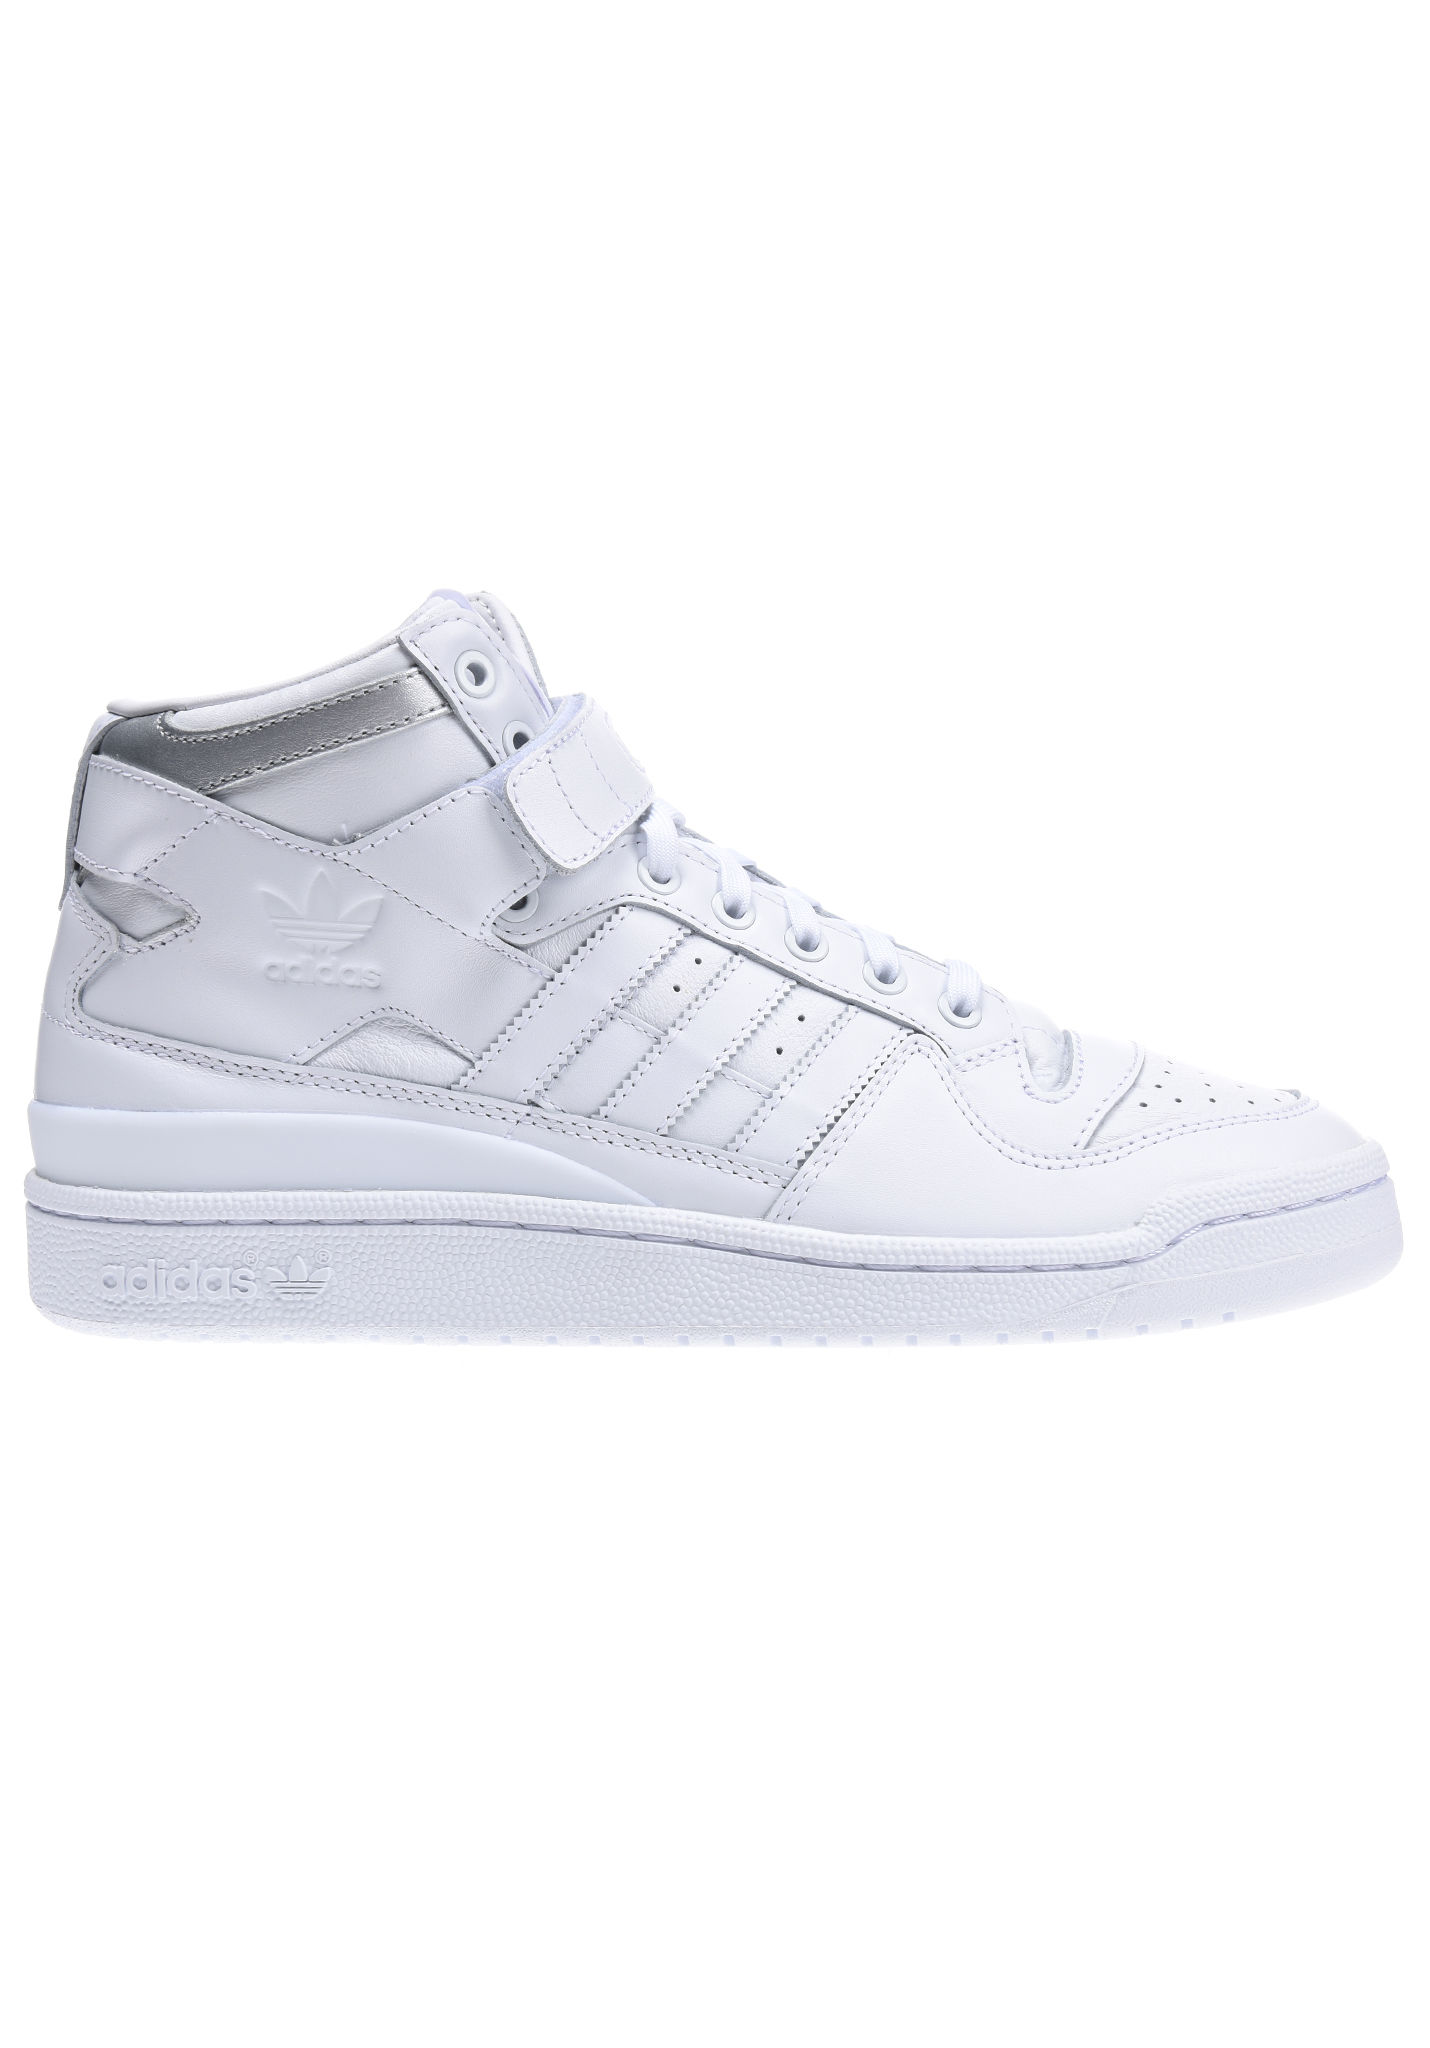 ea8f37981ba Sneakers Sneakers Mid Adidas Forum White Refined Men For For For ZHqZCWp0nP